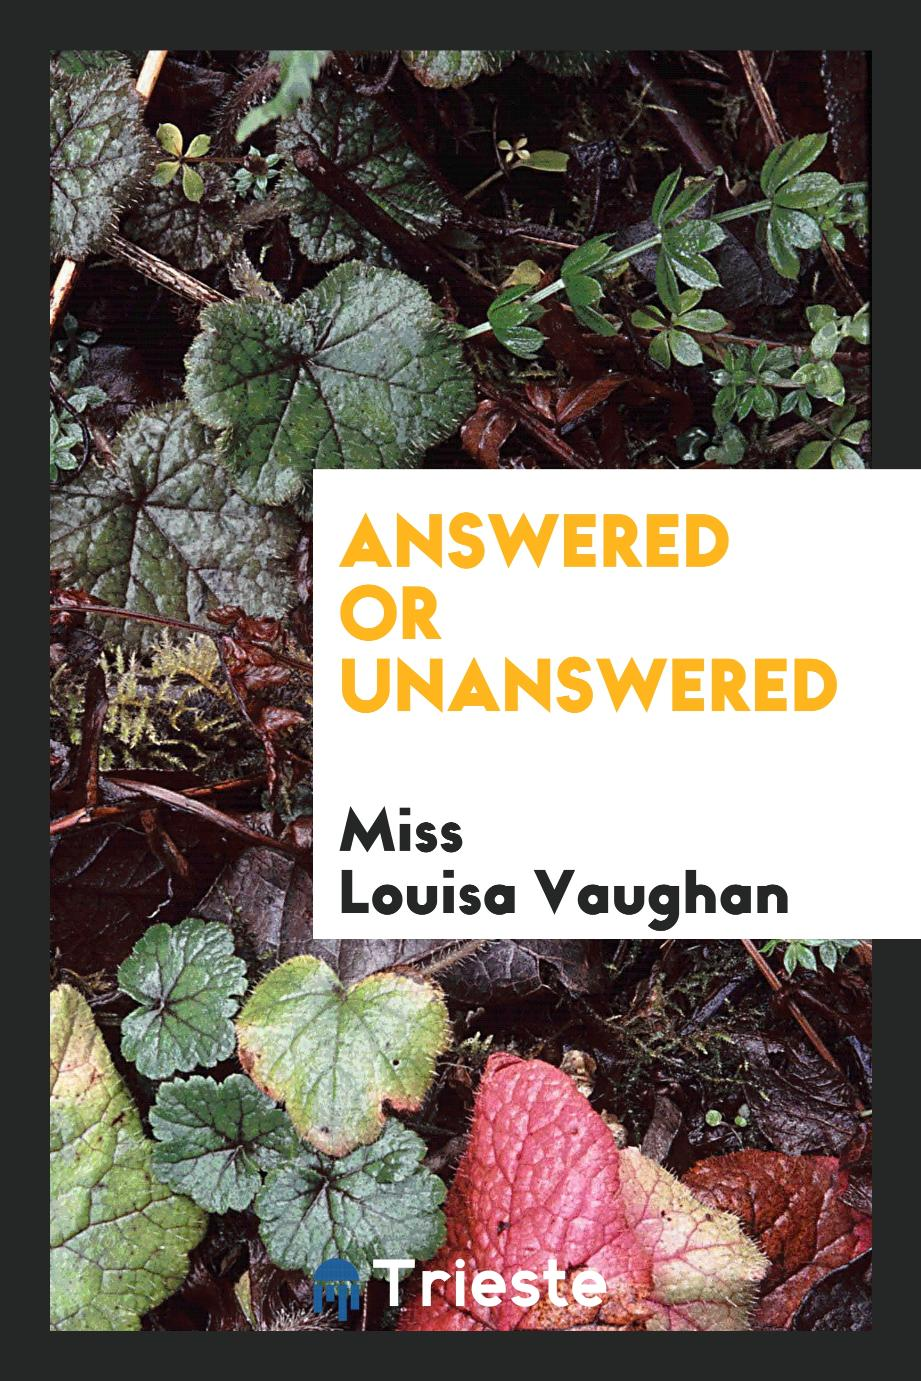 Miss Louisa Vaughan - Answered or Unanswered